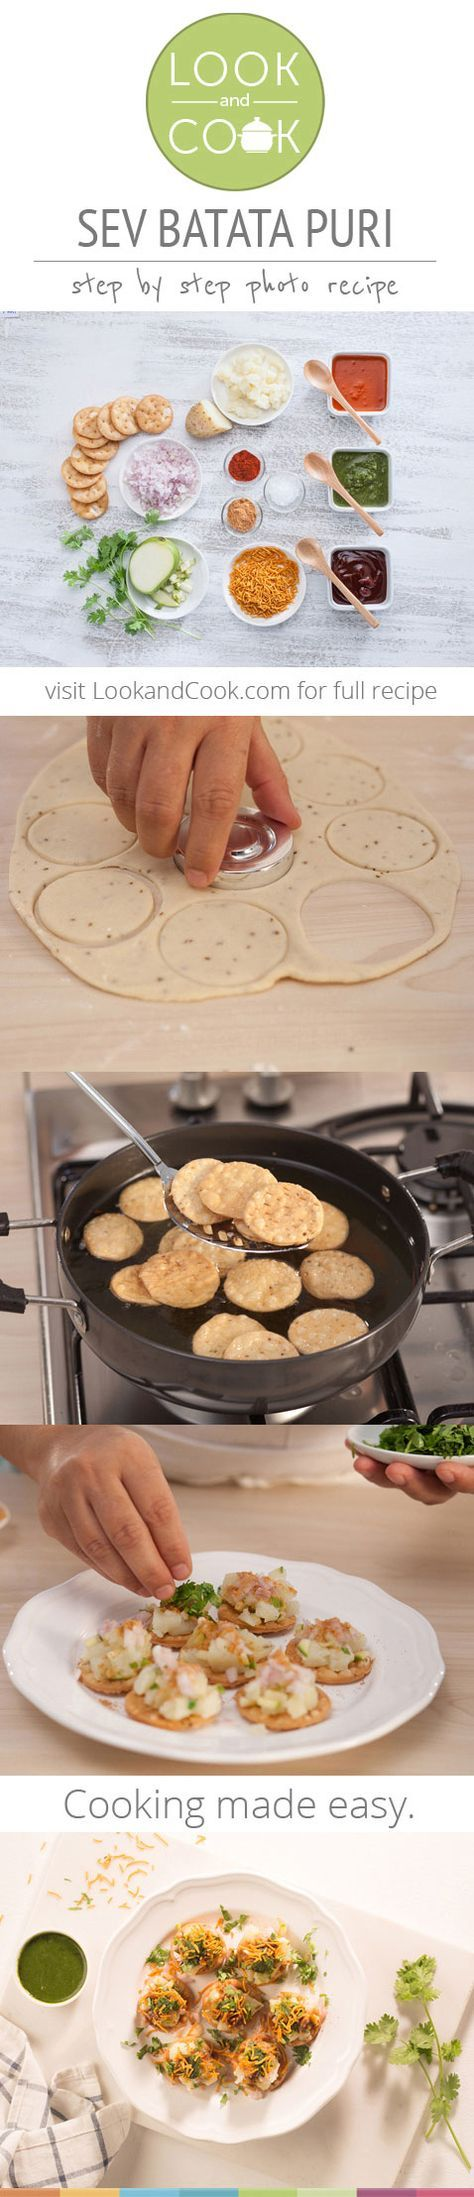 SEV BATATA PURI RECIPE Sev Batata Puri(#LC14023):A popular street side Indian fast-food snack, this spicy-yet- sweet treat is synonymous with Bombay's Girgaum Chowpatty.